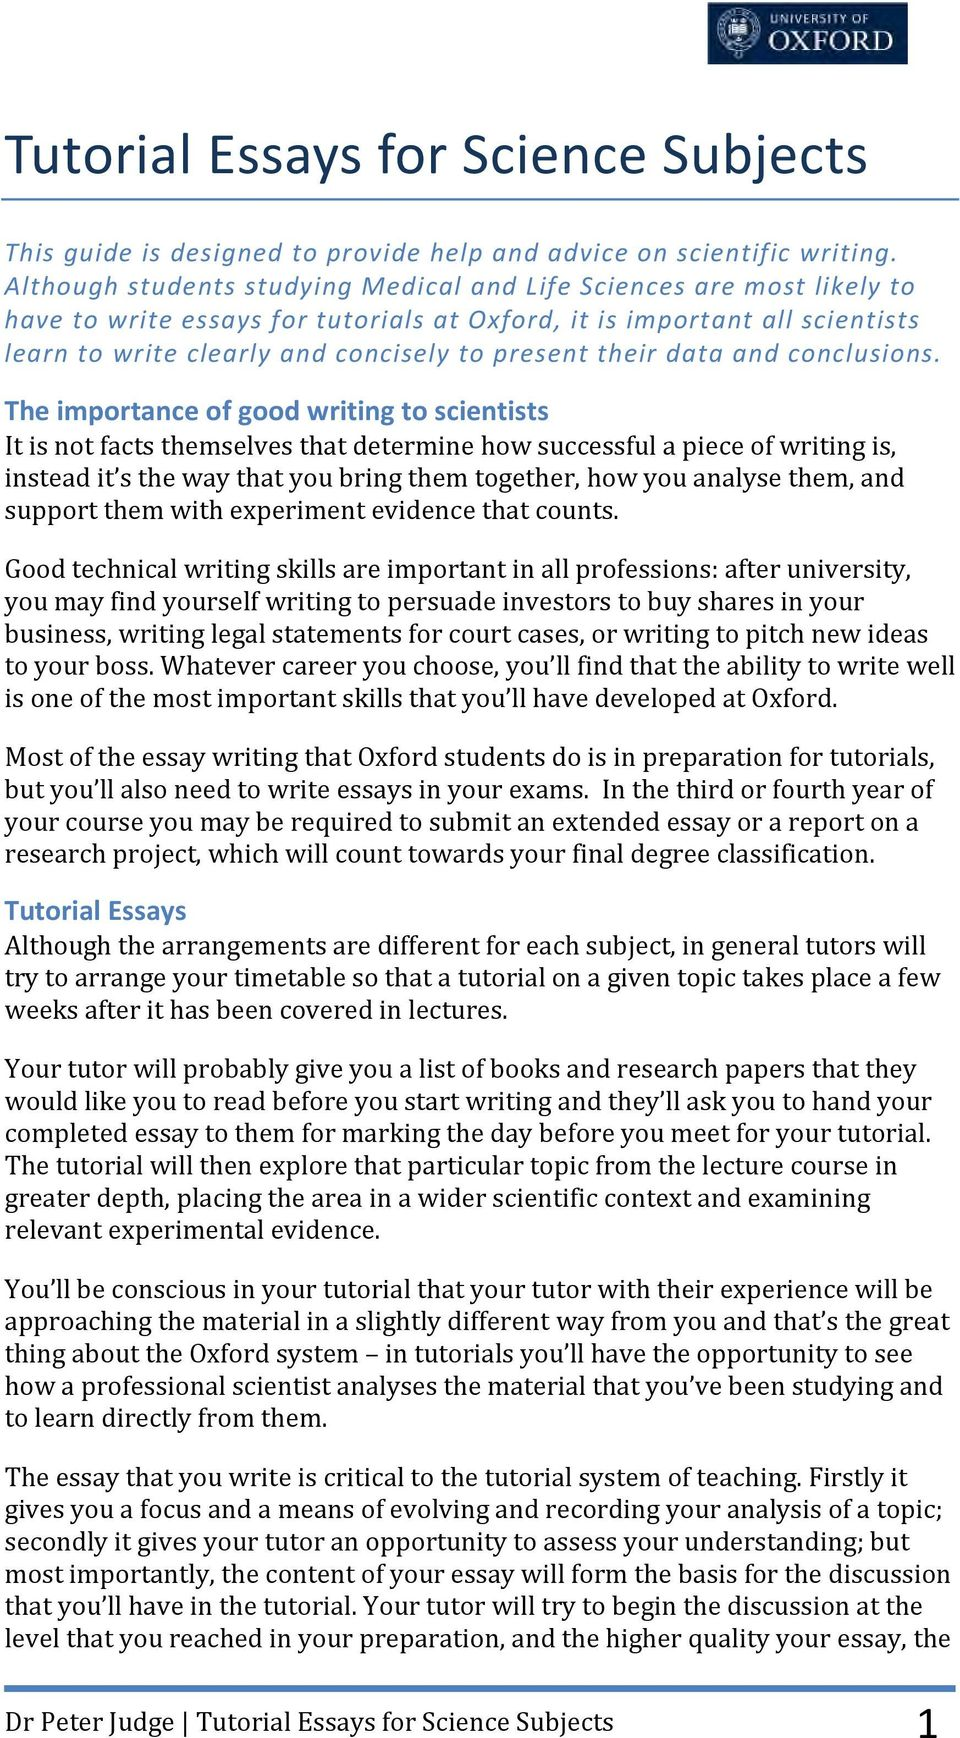 What Is A Thesis Statement For An Essay  Example Of An Essay Proposal also Learn English Essay Writing Tutorial Essays For Science Subjects  Pdf Performance Management Essay